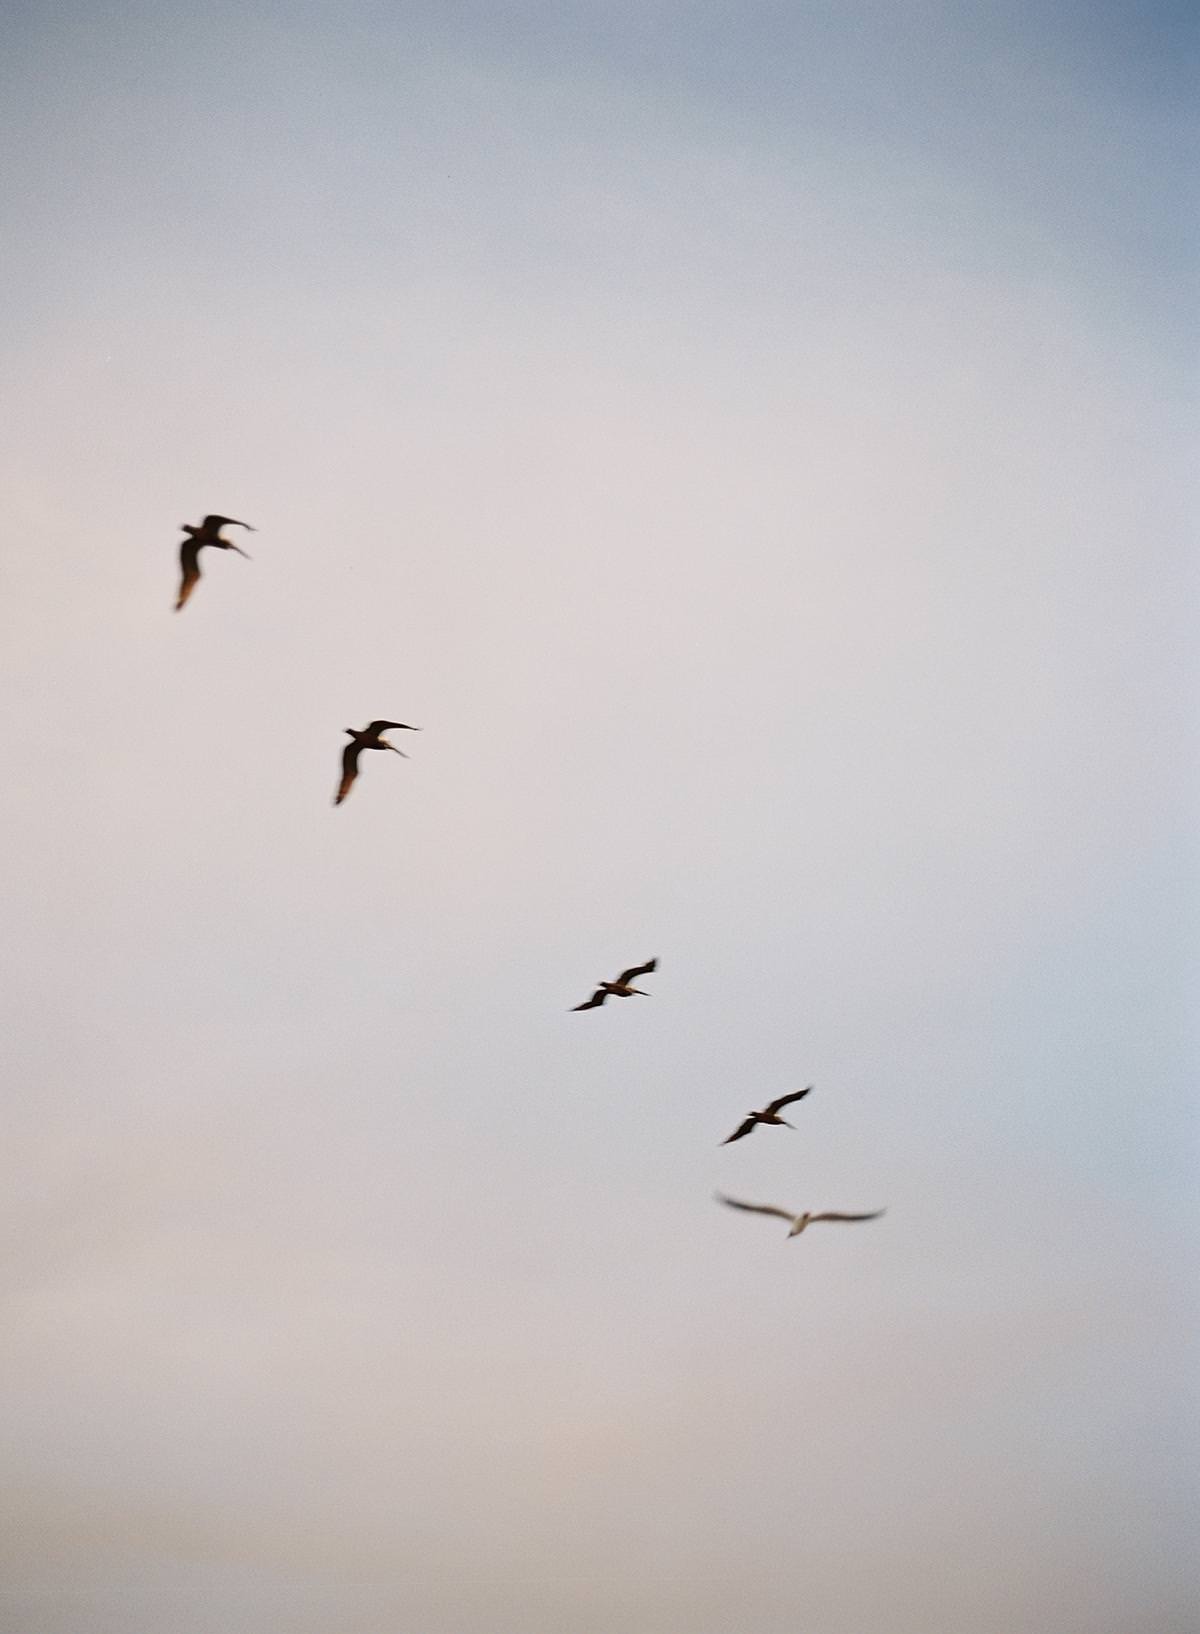 birds flying on film